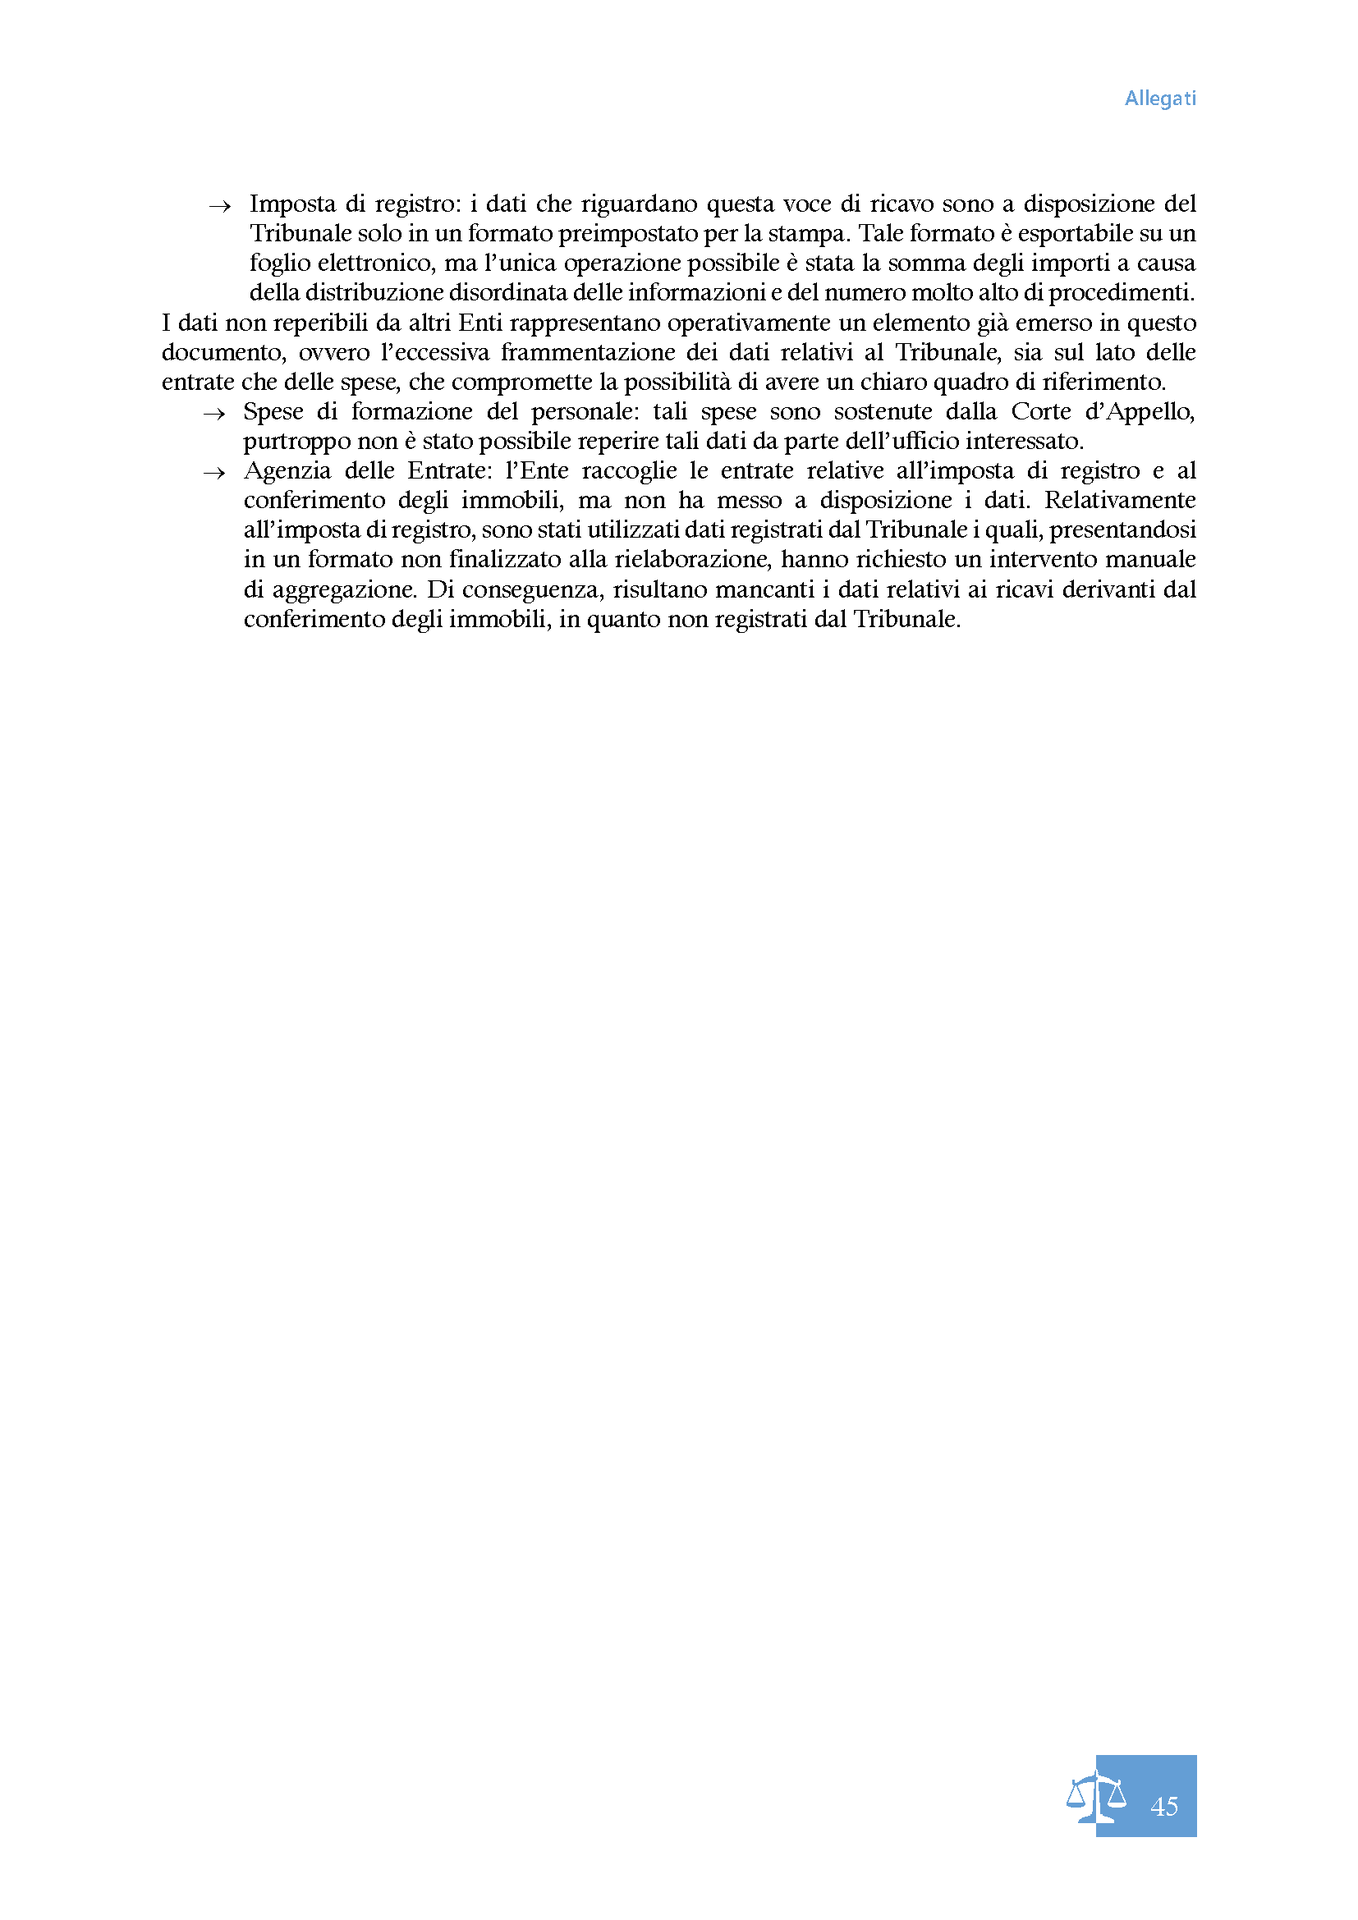 Rendiconto_Tribunale_Bologna_Page_46